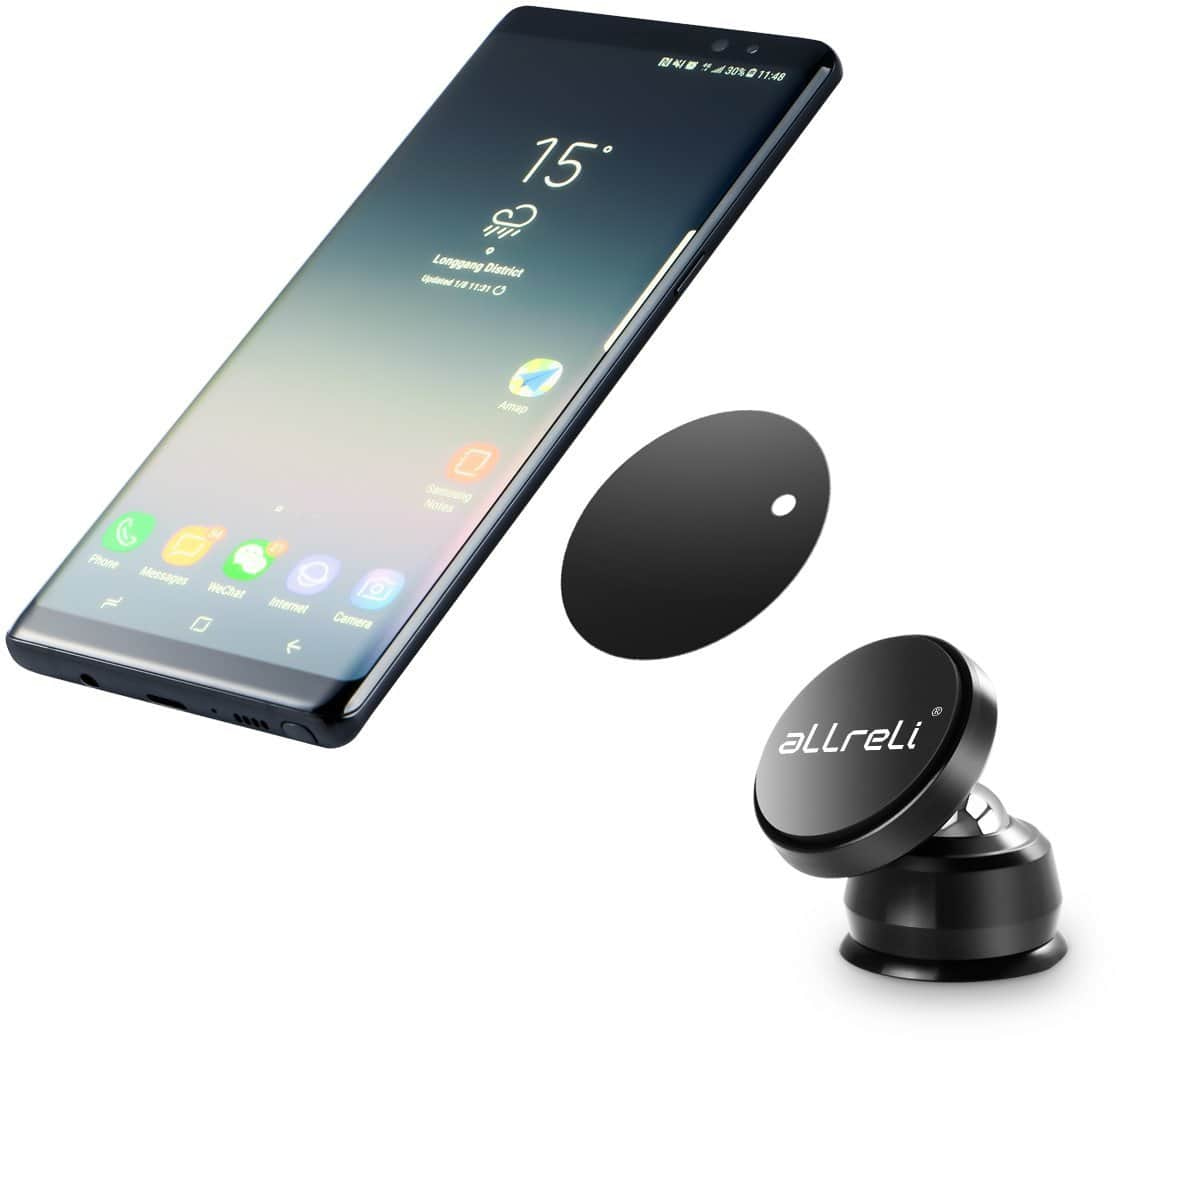 Universal Magnetic Car Mount/Cradle for Smart Phones - 30% off with coupon:  O8AOWZD9 - $7.69